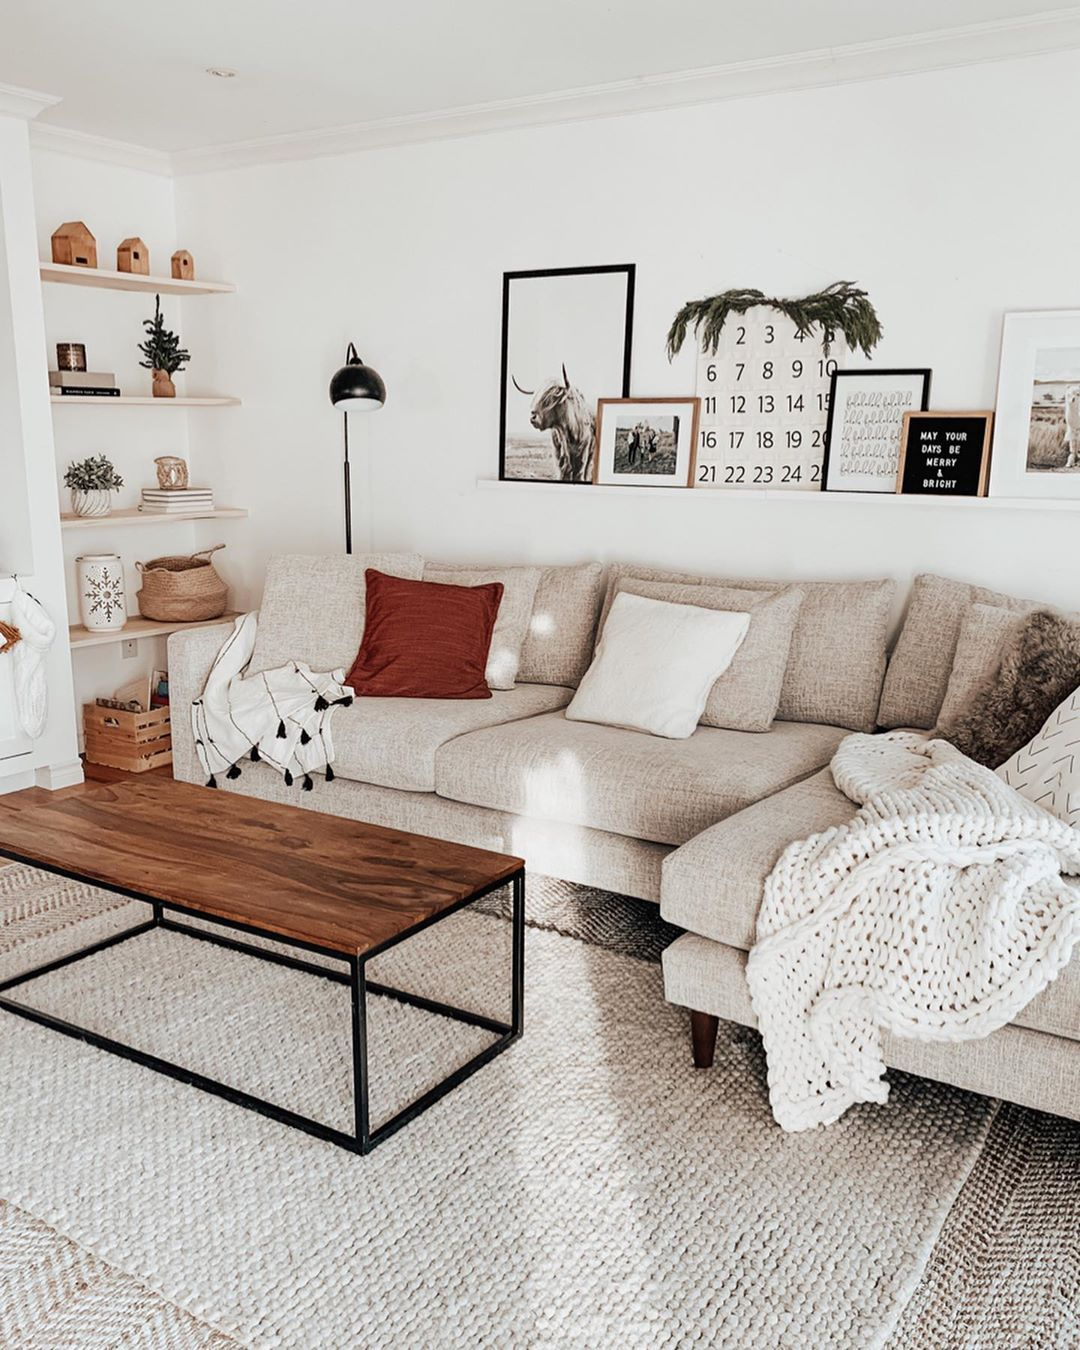 """B R I T T   H A V E N S's Instagram profile post: """"Merry Christmas Eve Eve! We are loving our new living room and had so much fun decorating this space for the holidays! @urbanbarn has the…"""""""